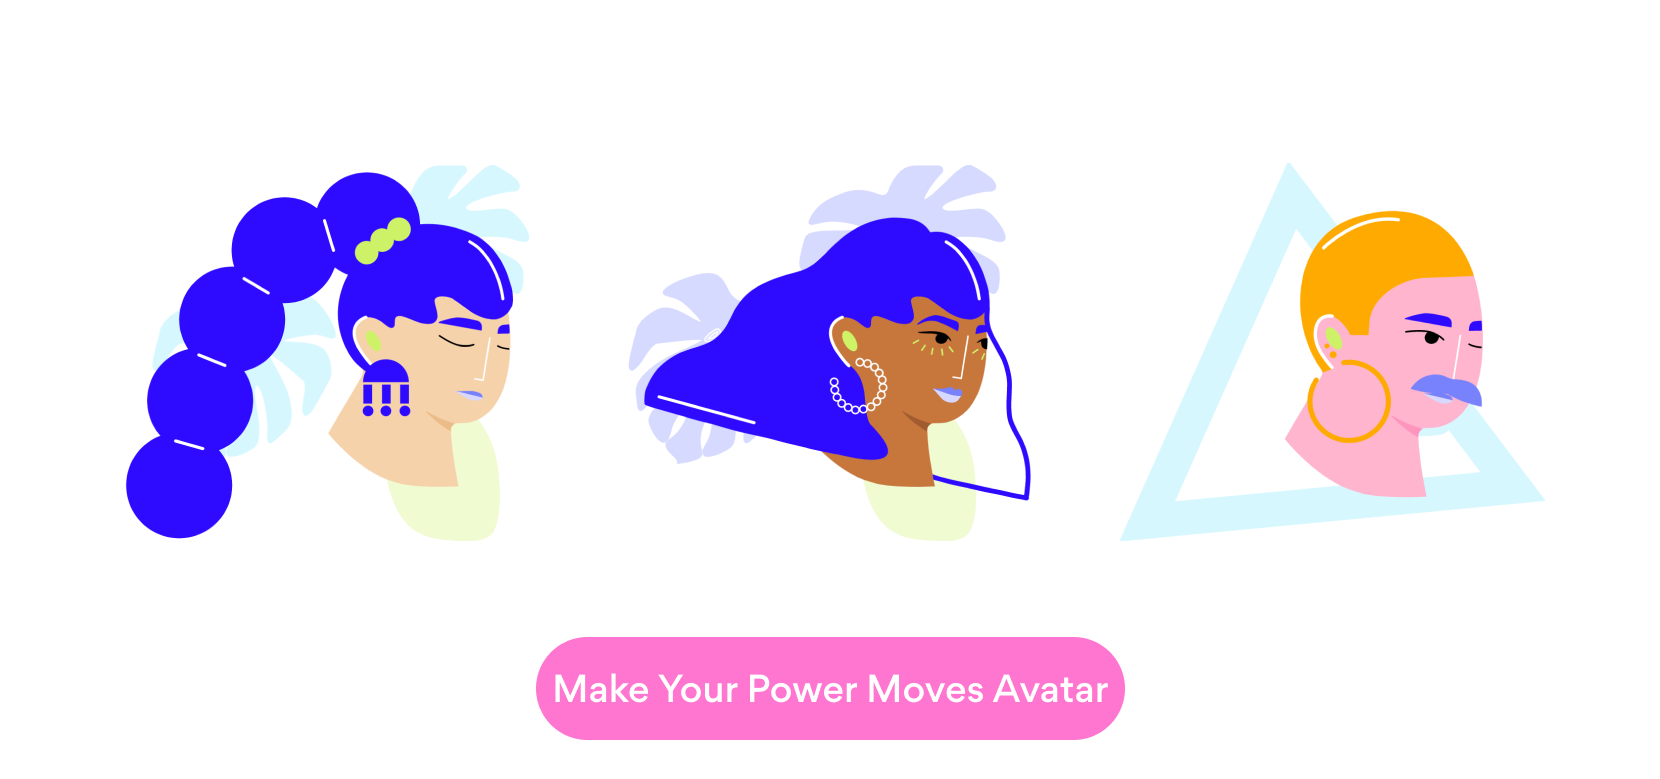 Make your Power Moves Avatar